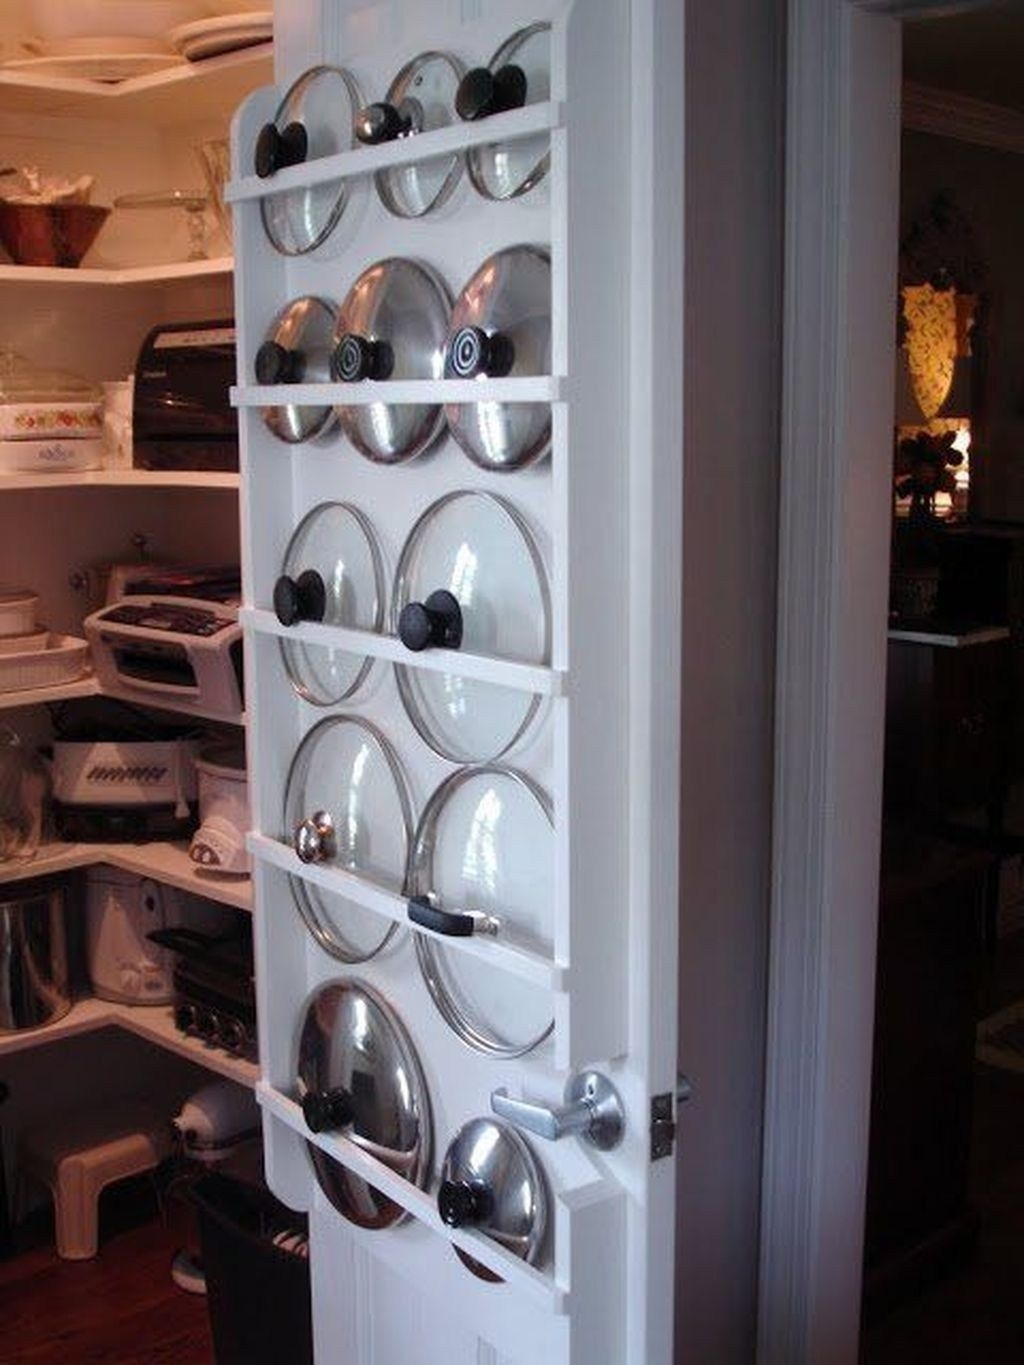 Glamour Kitchen Organization Decor Ideas To Try Right Now11